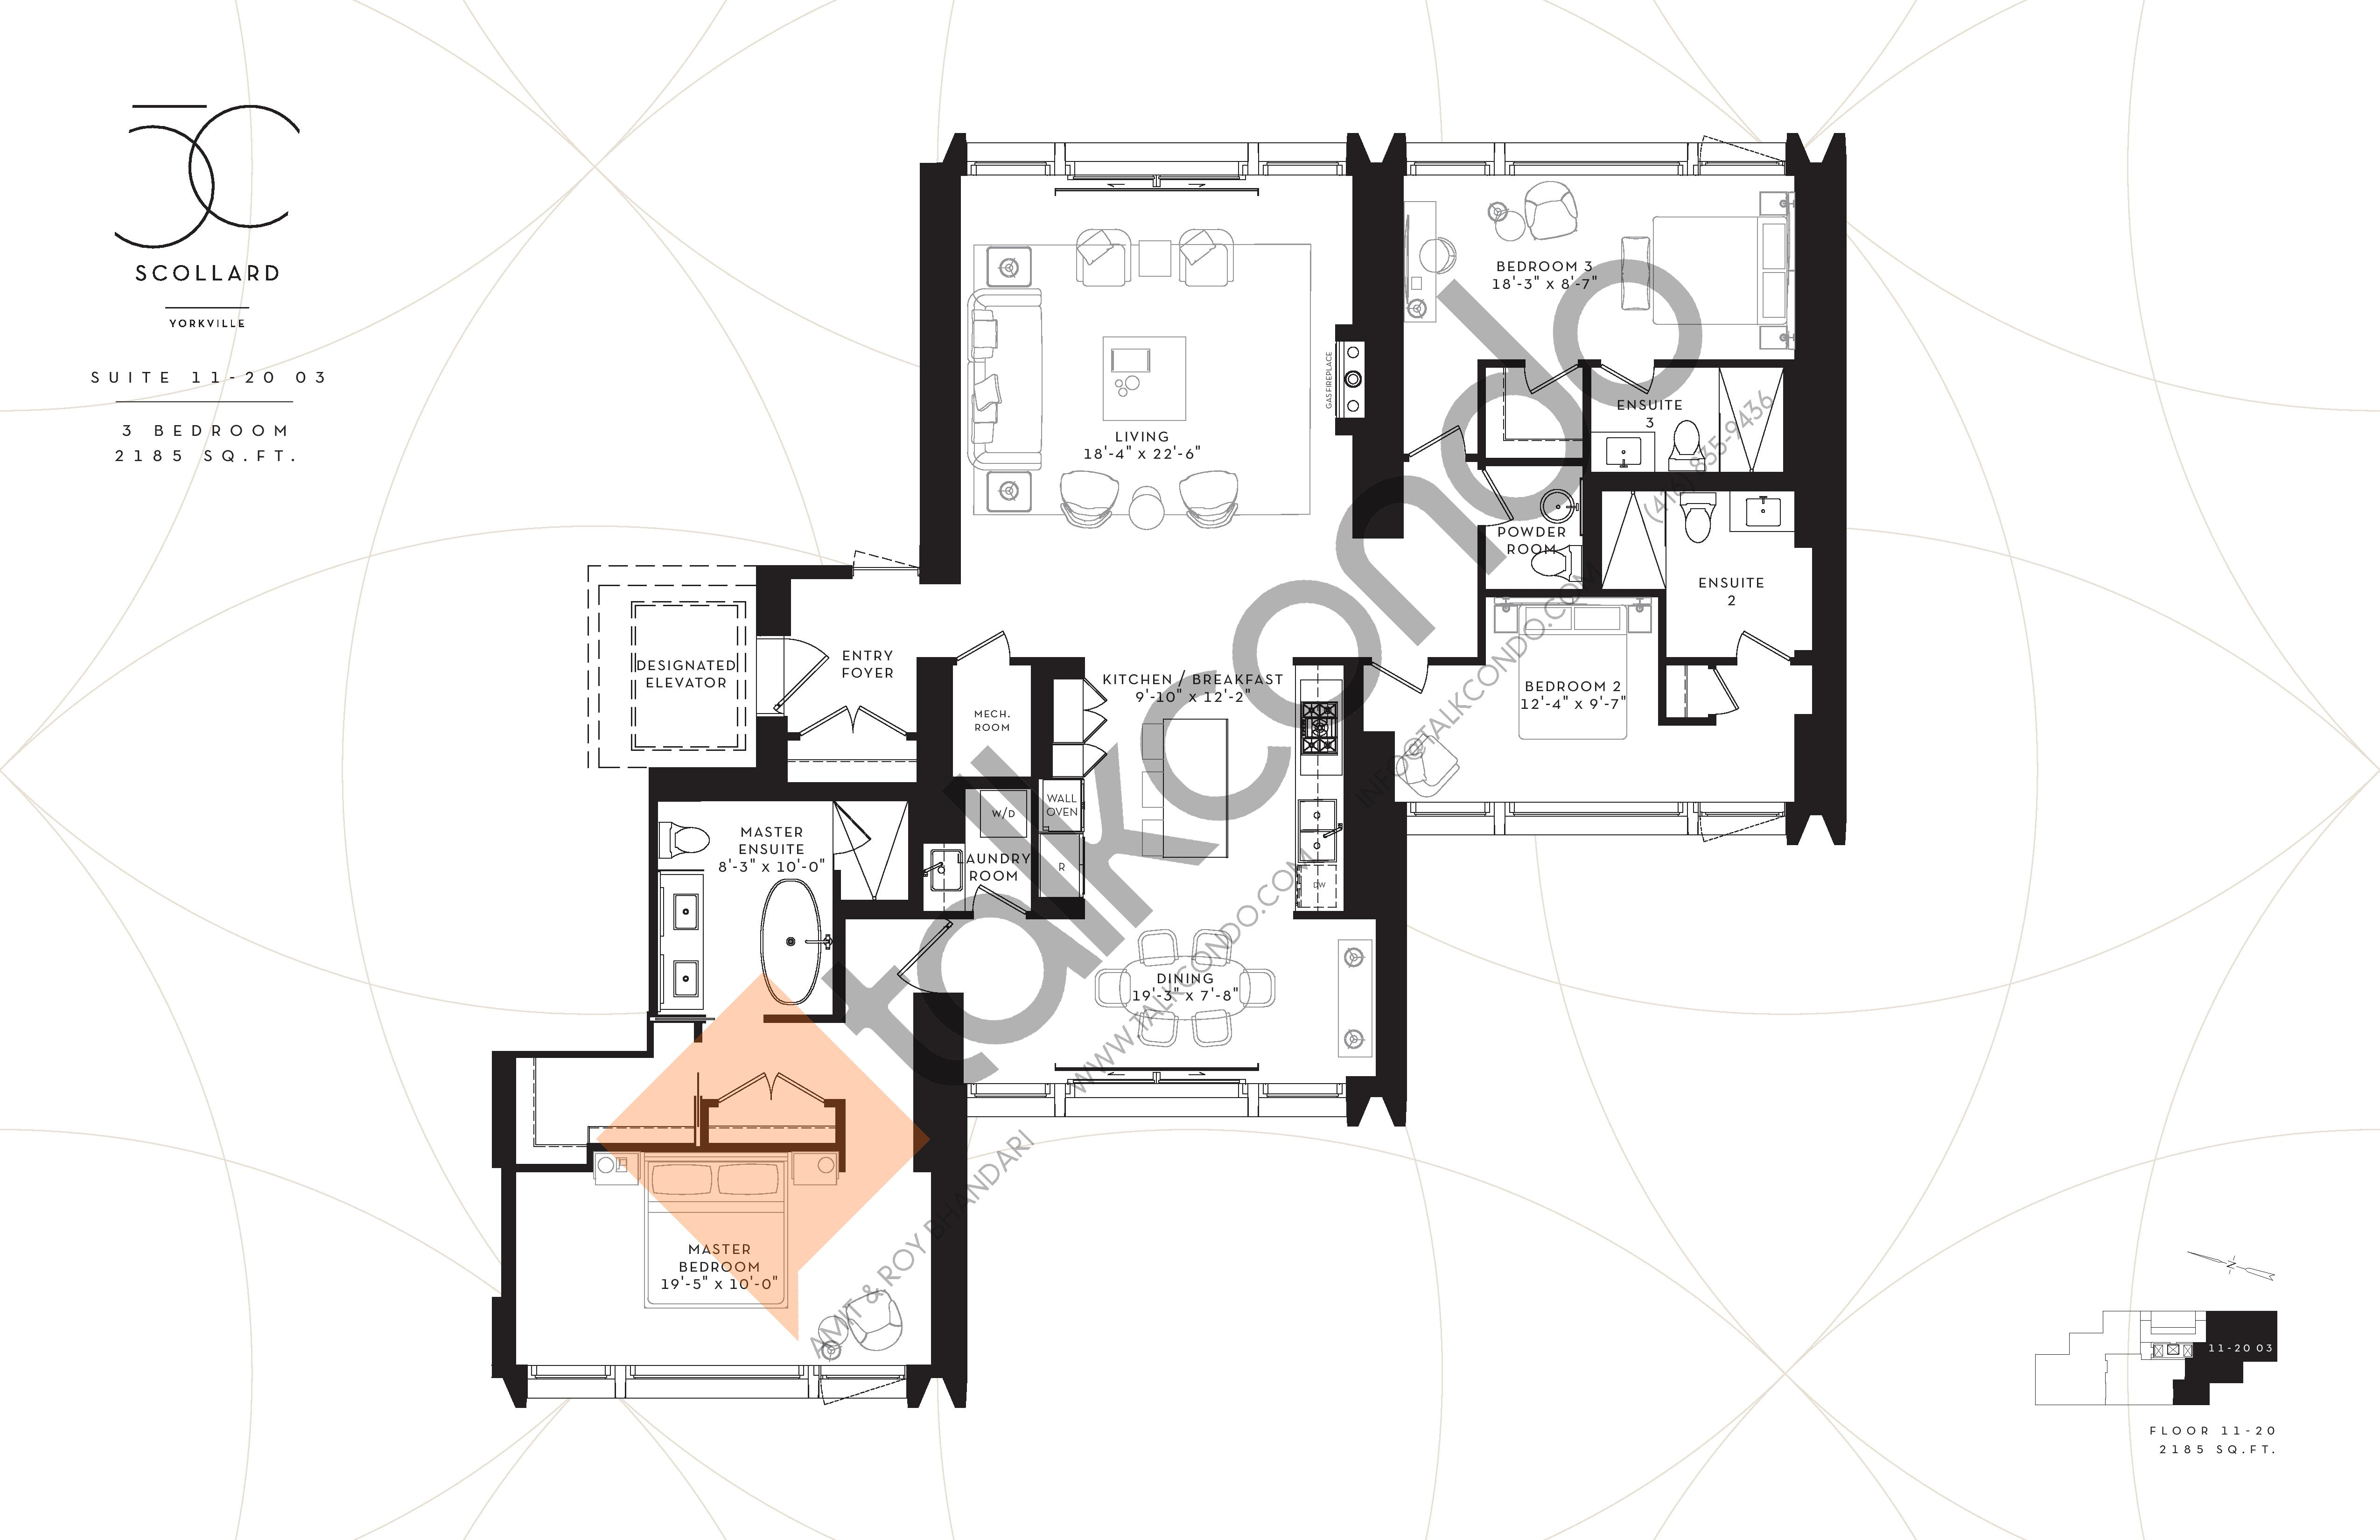 Suite 11-20 03 Floor Plan at Fifty Scollard Condos - 2185 sq.ft